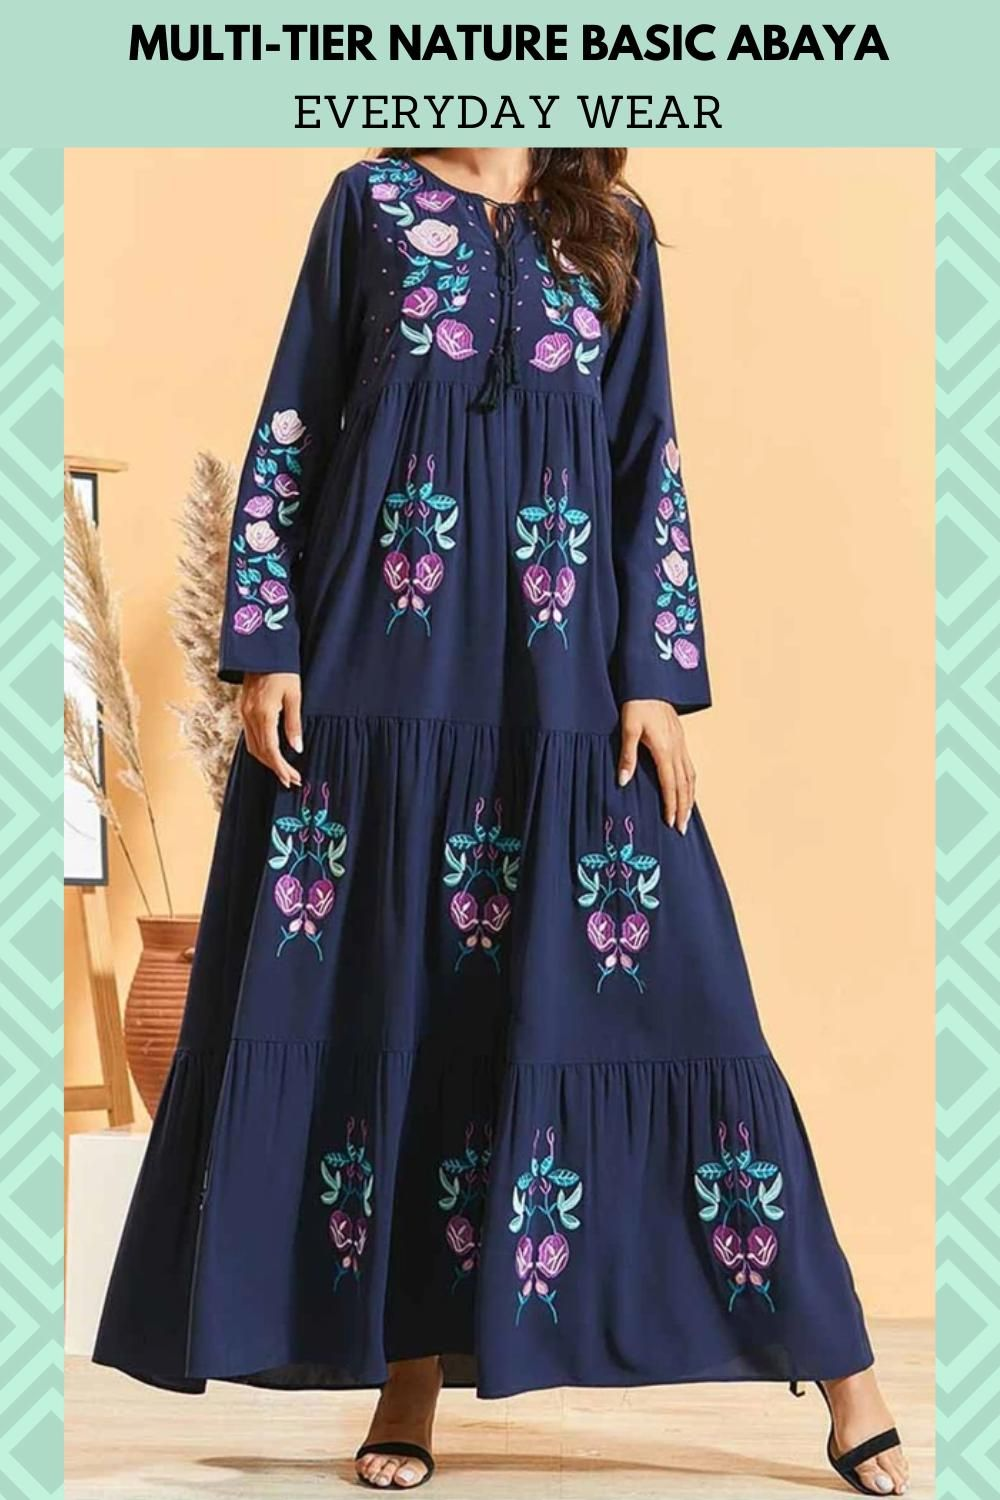 Multi Tier Nature Basic Abaya For Everyday Wear Video Abayas Fashion Dresses By Length Dresses